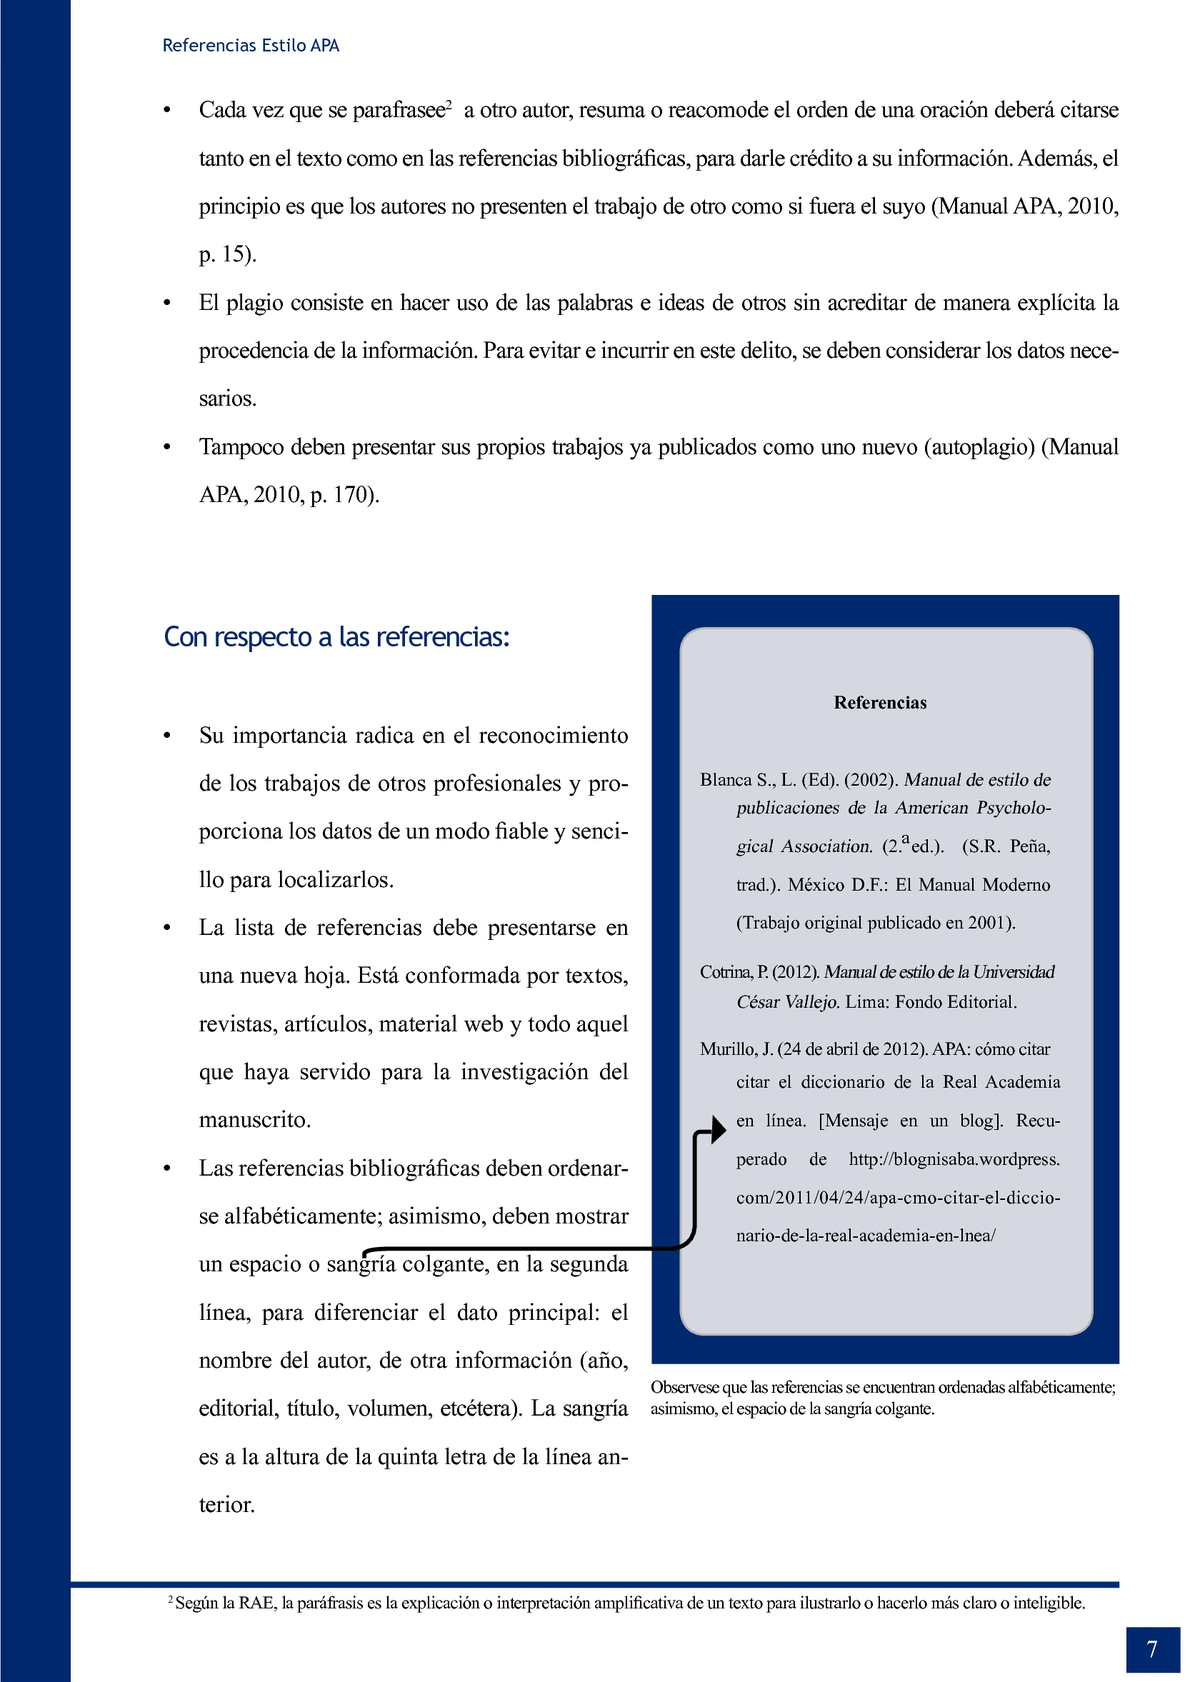 La Quinta Disciplina Libro Completo Pdf Download Manual De Referencias Estilo Apa Ucv Pdf Calameo Downloader